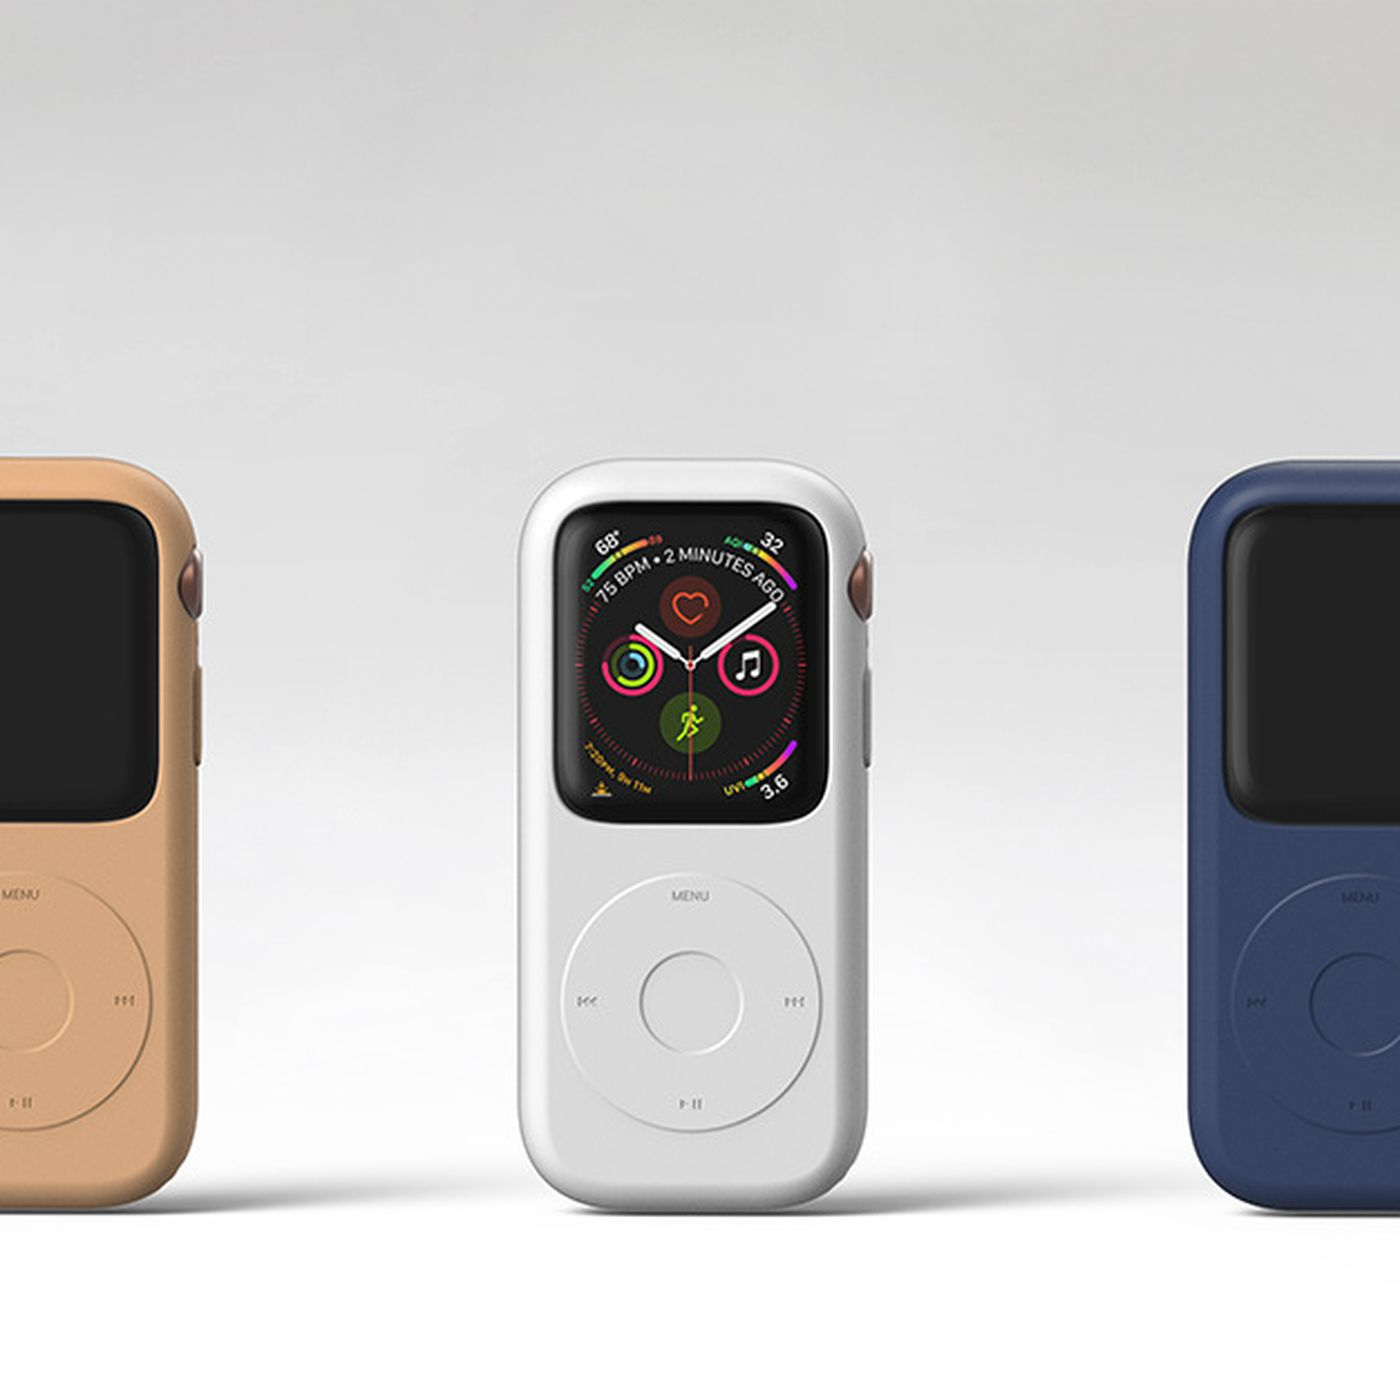 theverge.com - Dami Lee - We've come full circle with this Apple Watch iPod nano concept